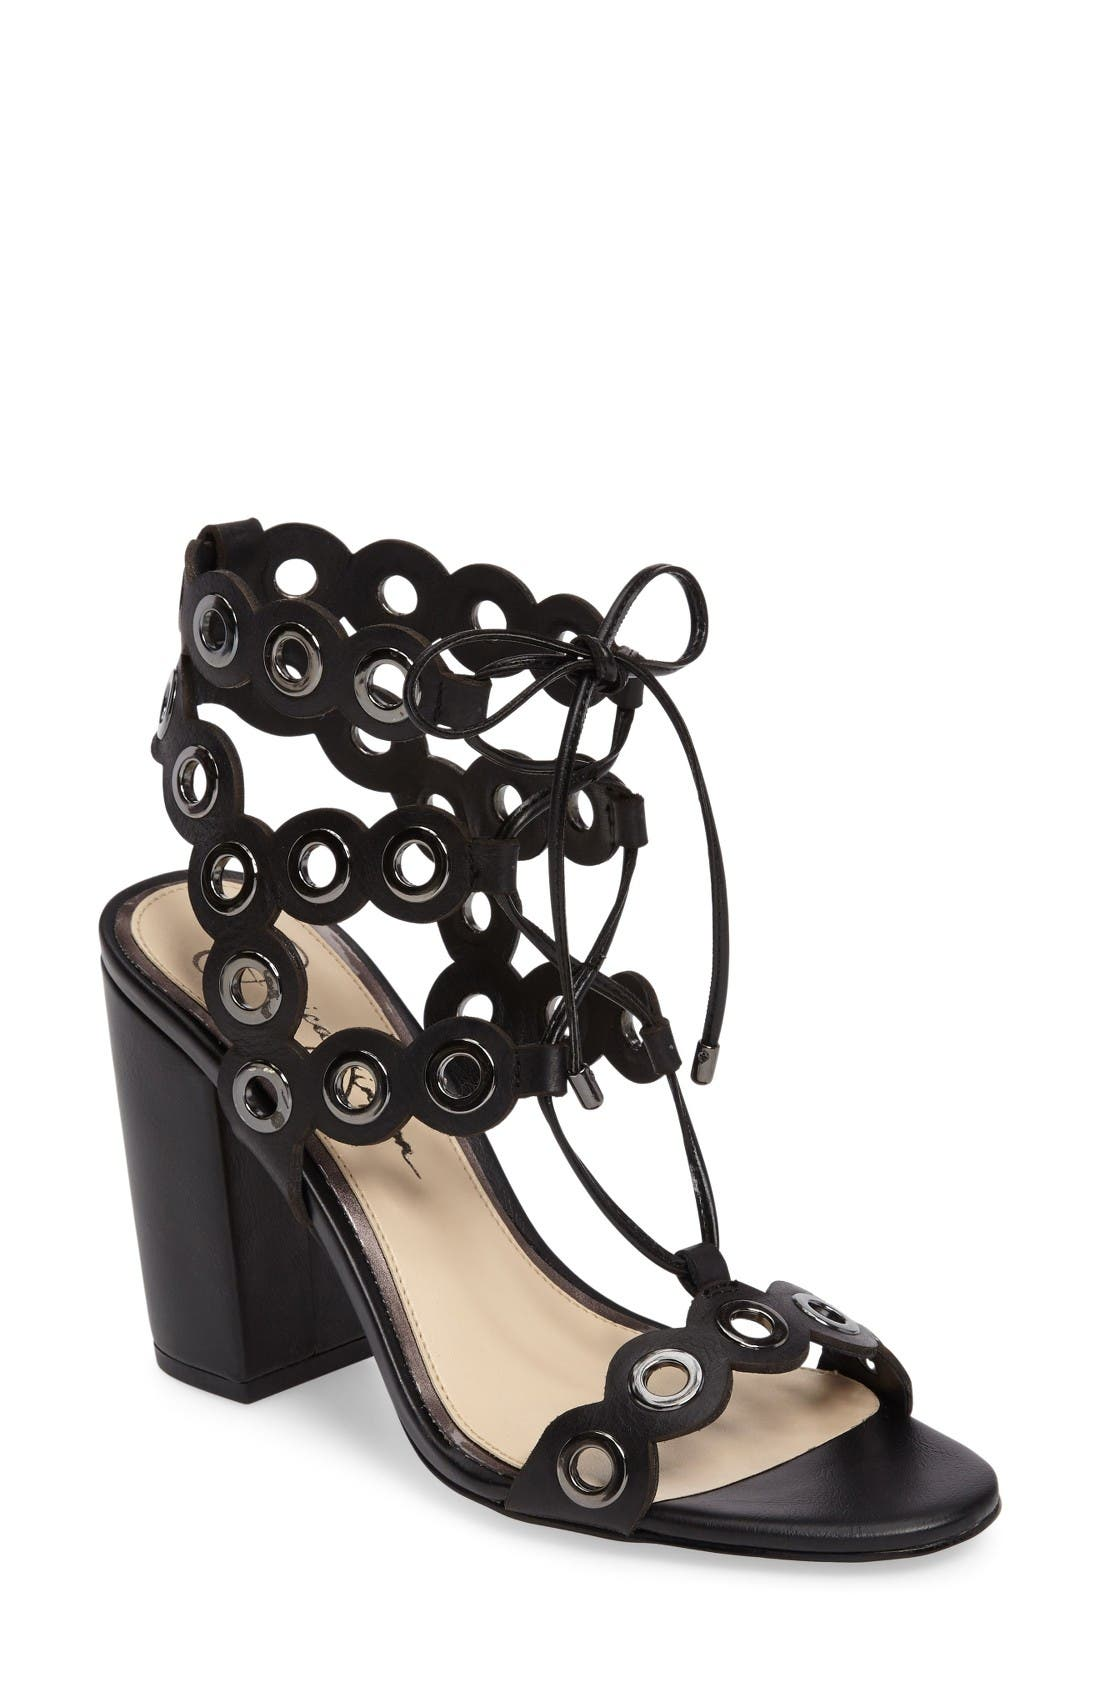 Alternate Image 1 Selected - Jessica Simpson Kariss Lace-Up Sandal (Women)